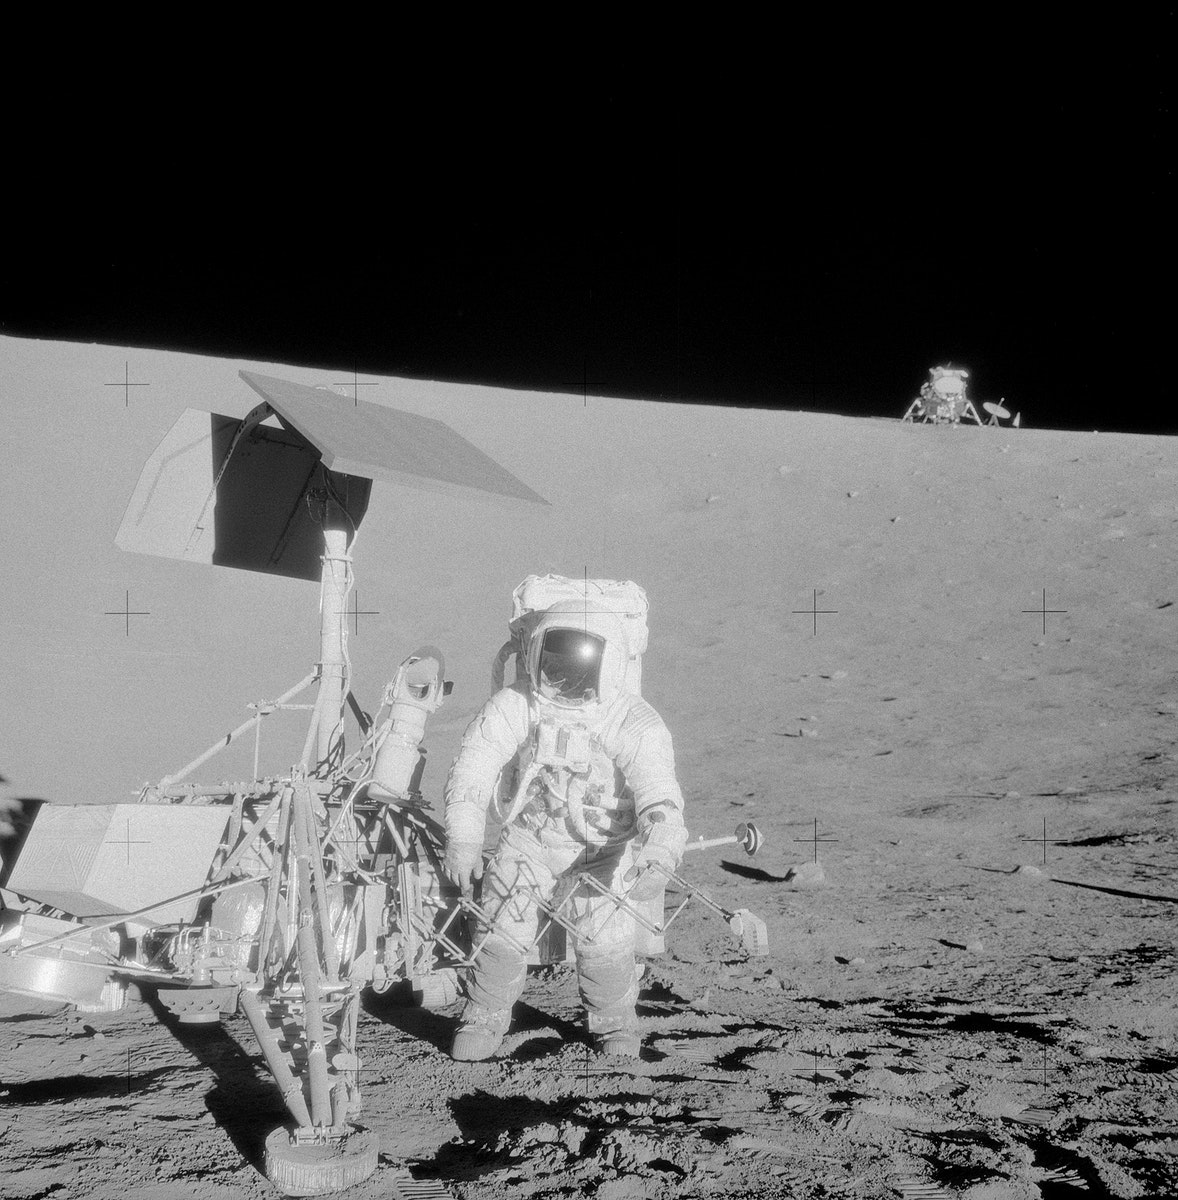 Astronaut Charles Conrad Jr., commander, examines the unmanned Surveyor 3 spacecraft during the second Apollo 12…